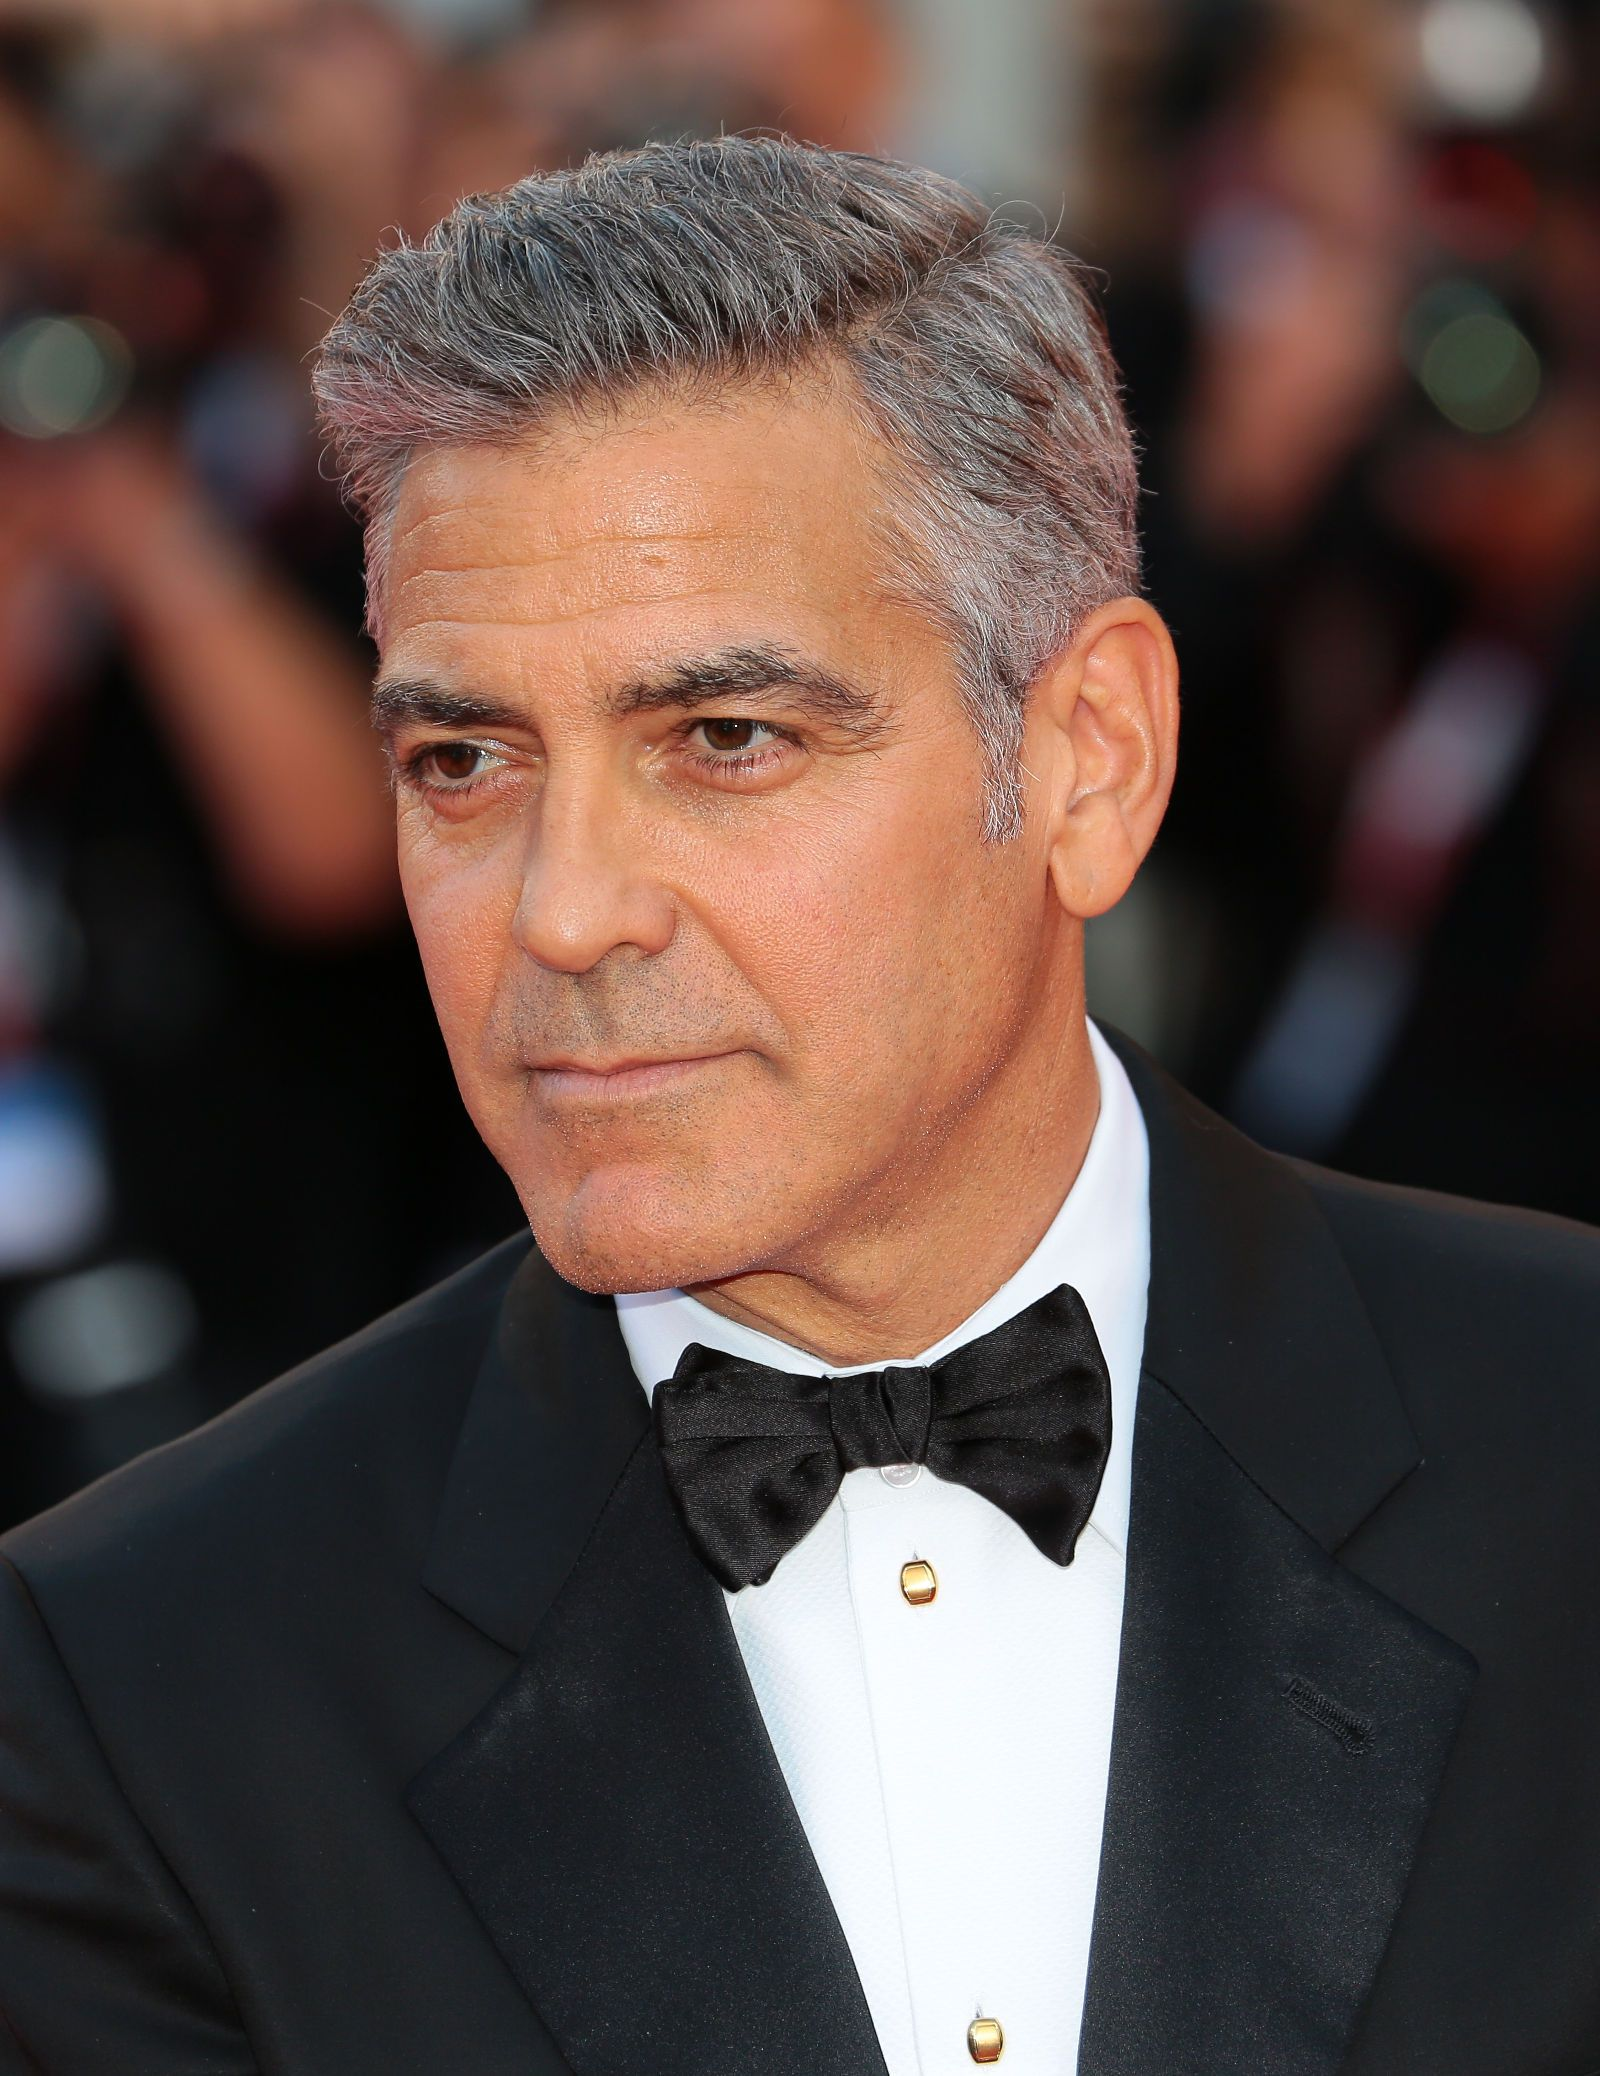 15 Glorious Hairstyles For Men With Grey Hair Aka Silver Foxes